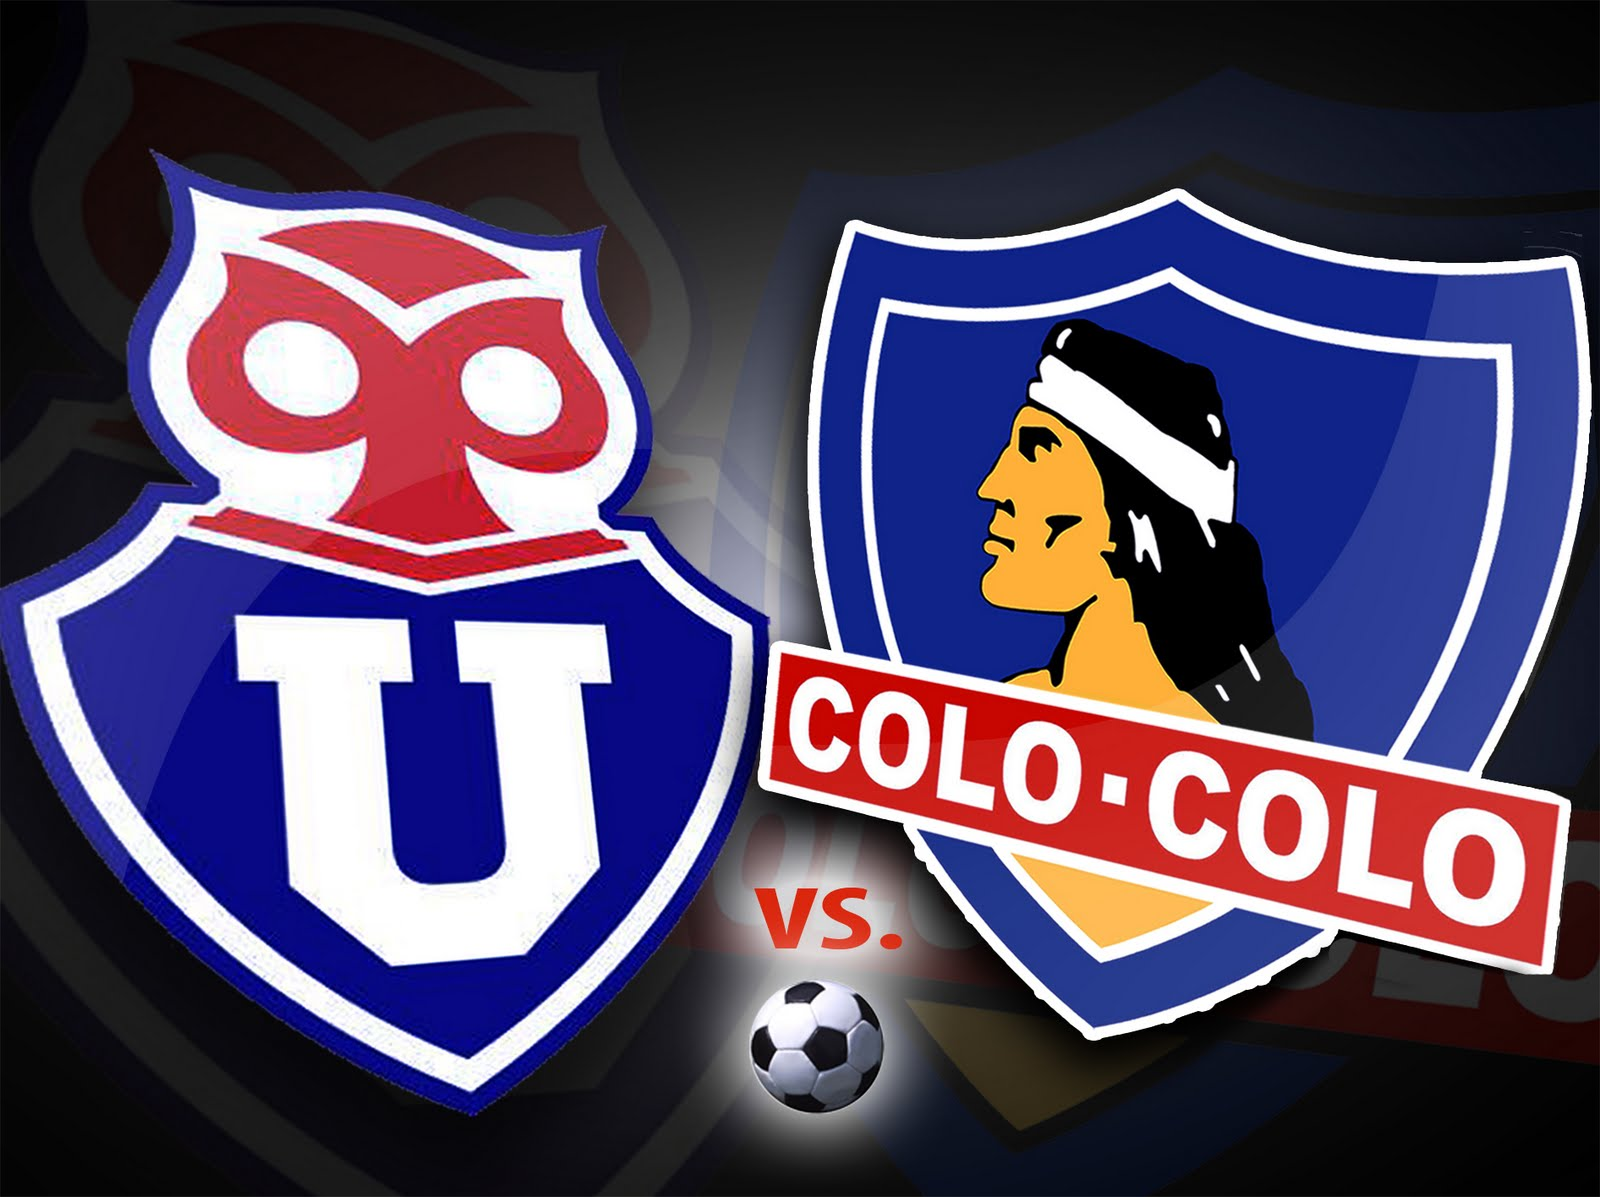 VER UNIVERSIDAD DE CHILE VS COLO COLO EN VIVO, CLÁSICO CHILENO ONLINE